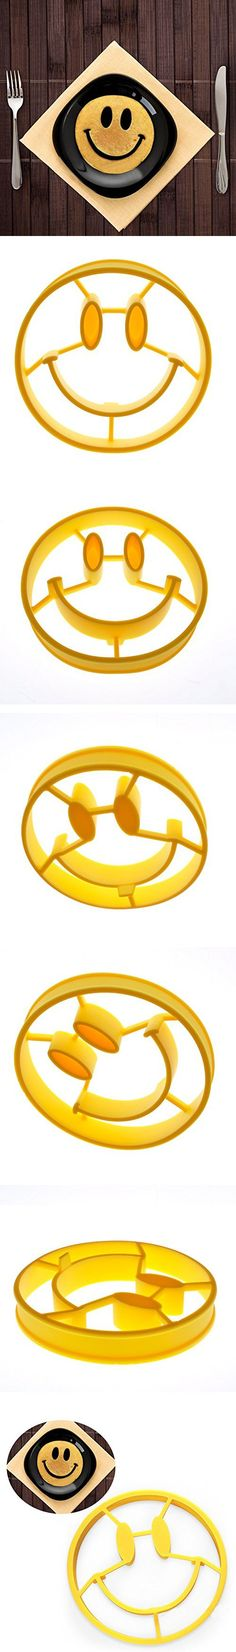 Omelette mold Breakfast Cute Silicone Smiley Face Fried Egg Mold Pancake Egg Rings Shaper Funny Creative Kitchen Tool